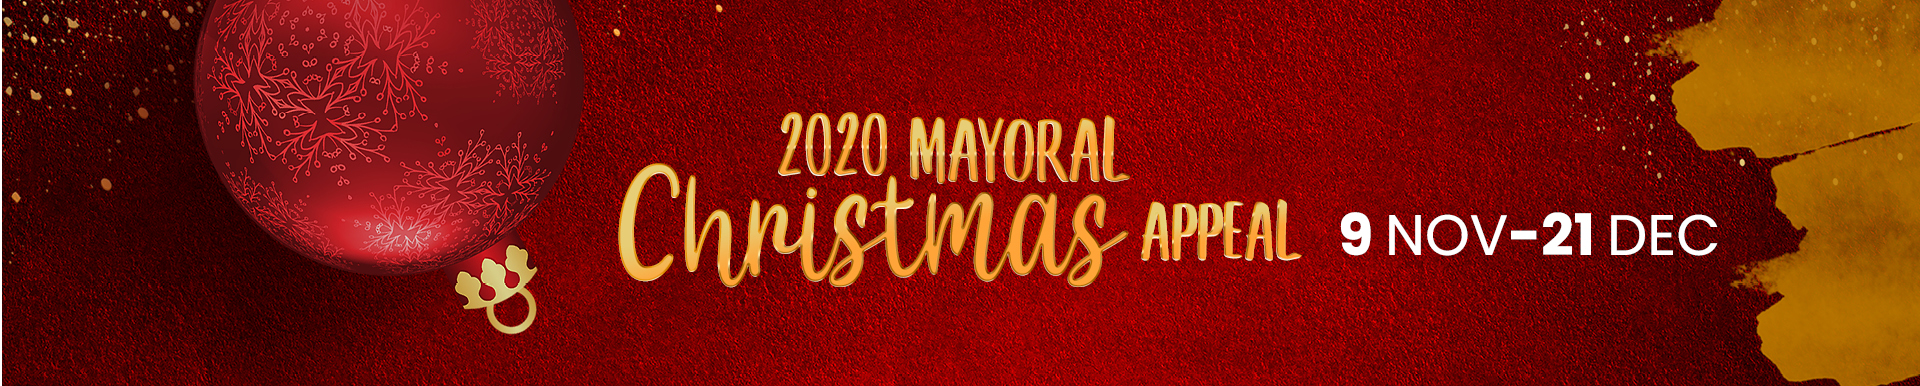 Mayoral Christmas Appeal